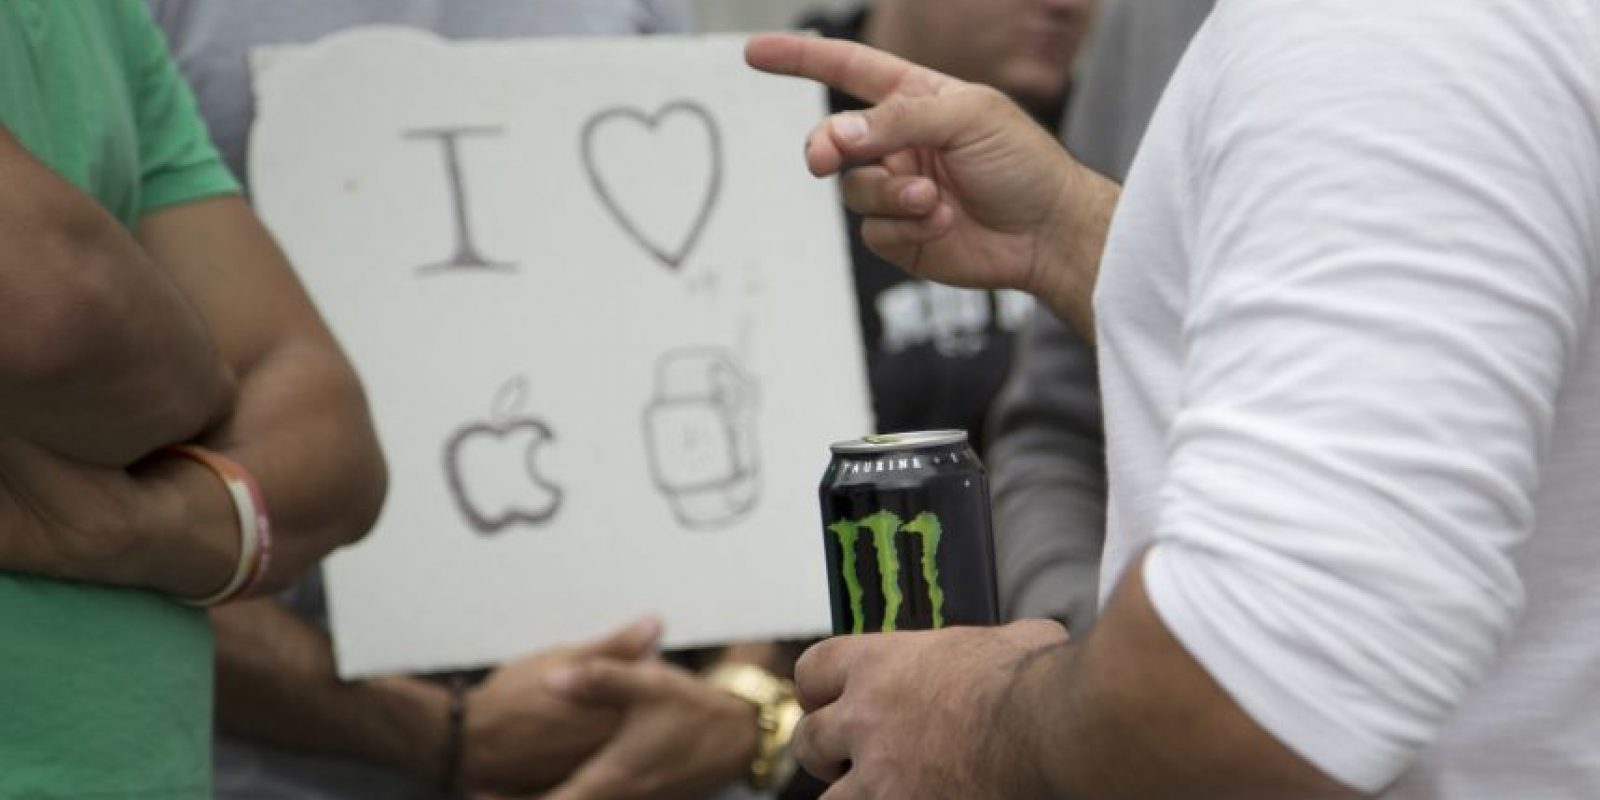 Manifestaciones de amor por el Apple Watch. Esto ocurrió en Los Ángeles, California, Estados Unidos. Foto: Getty Images